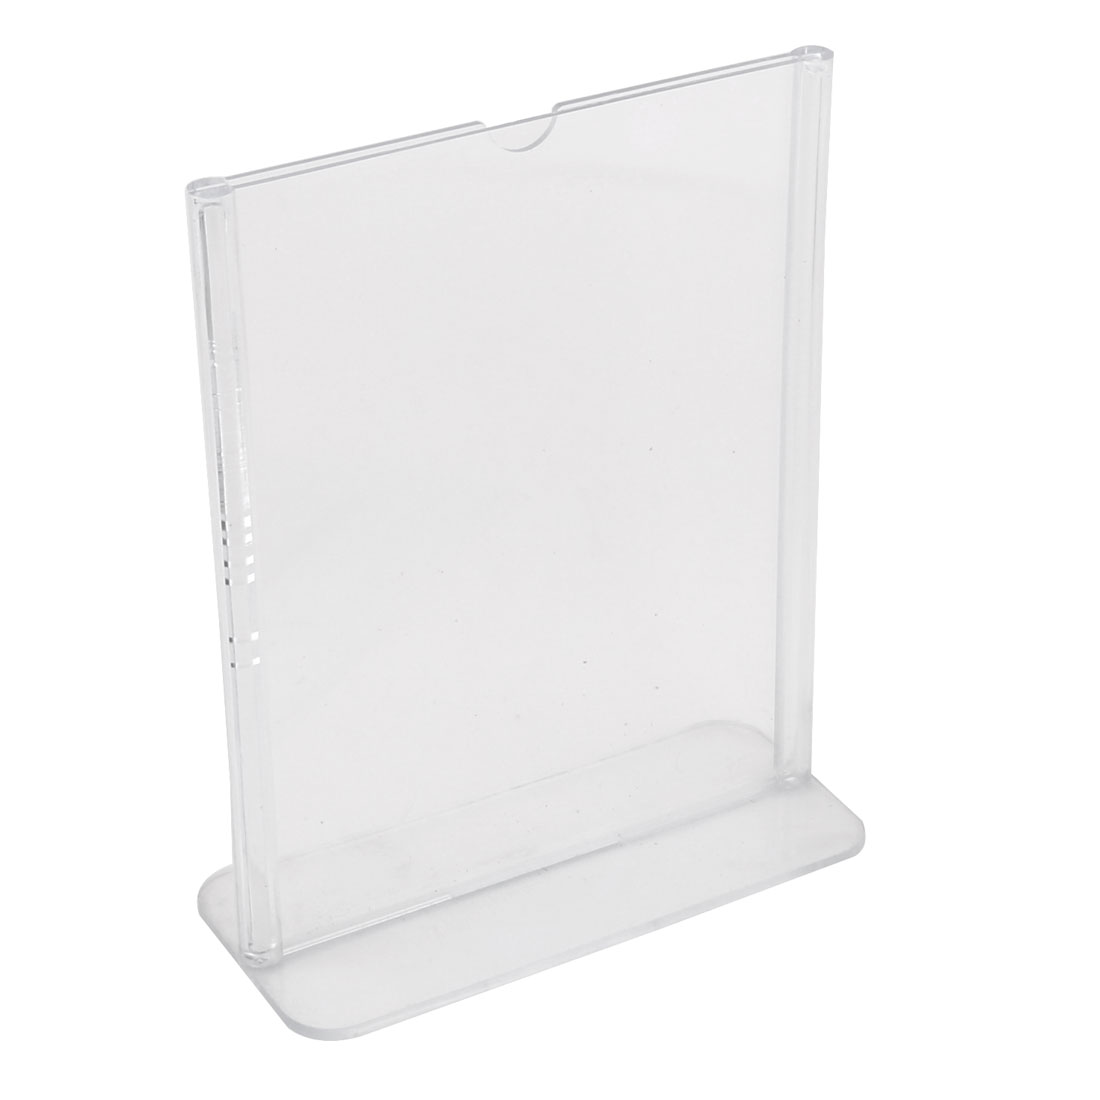 Plastic Upright Business Table Card Display Ad Sign Menu Stand Holder Clear